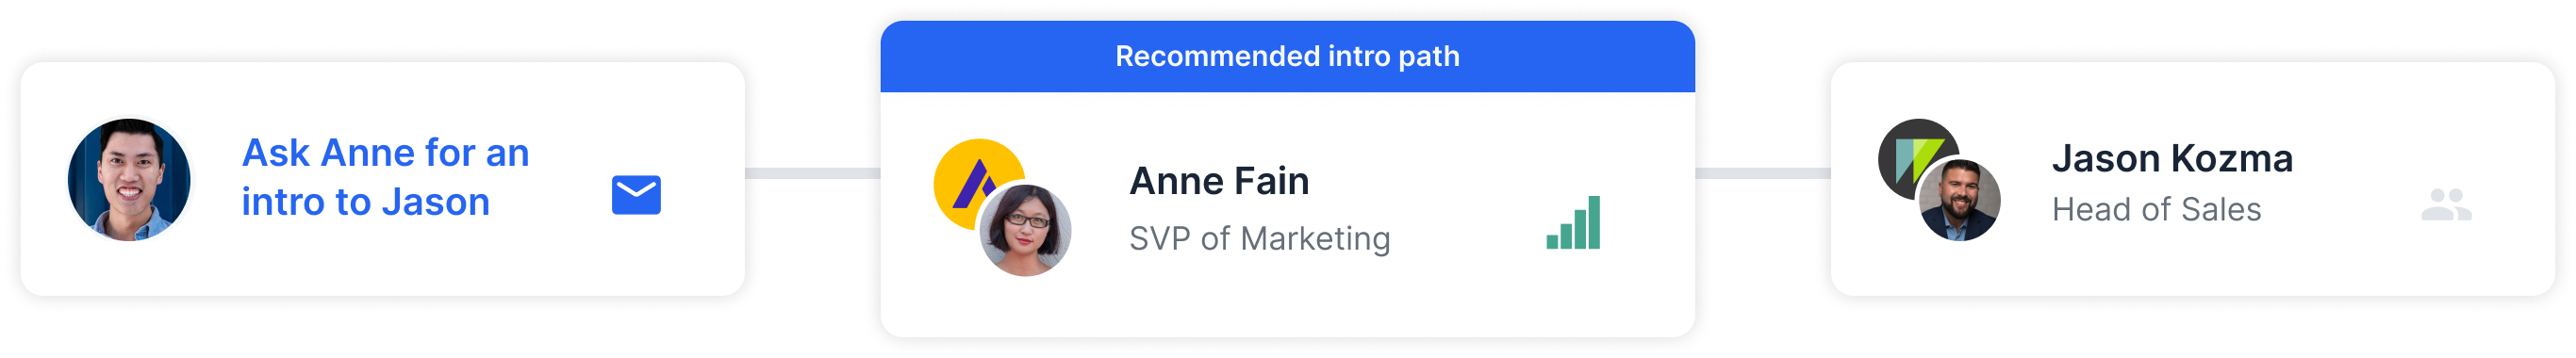 A three step referral process: Ask Anne for an intro to Jason lead to a recommended introduction path and finally, a warm introduction making deal flow seamless.